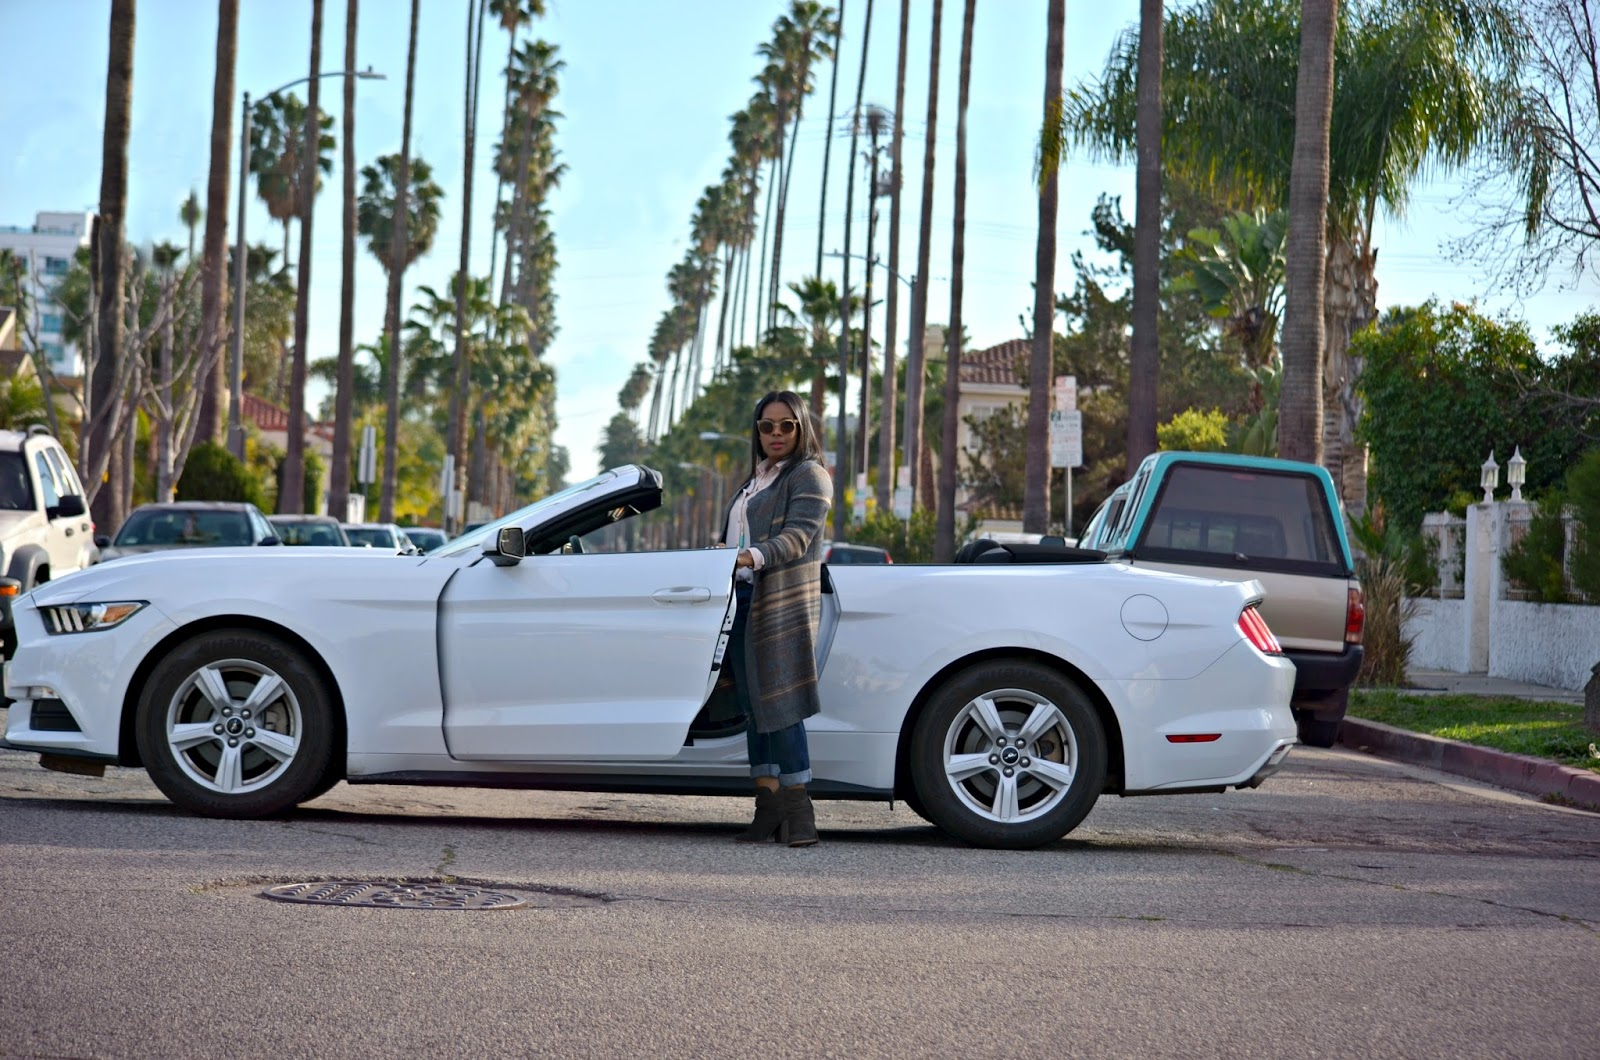 Los Angeles Palms Lined Street in A Convertible Mustang Listening To Mary J. Blige